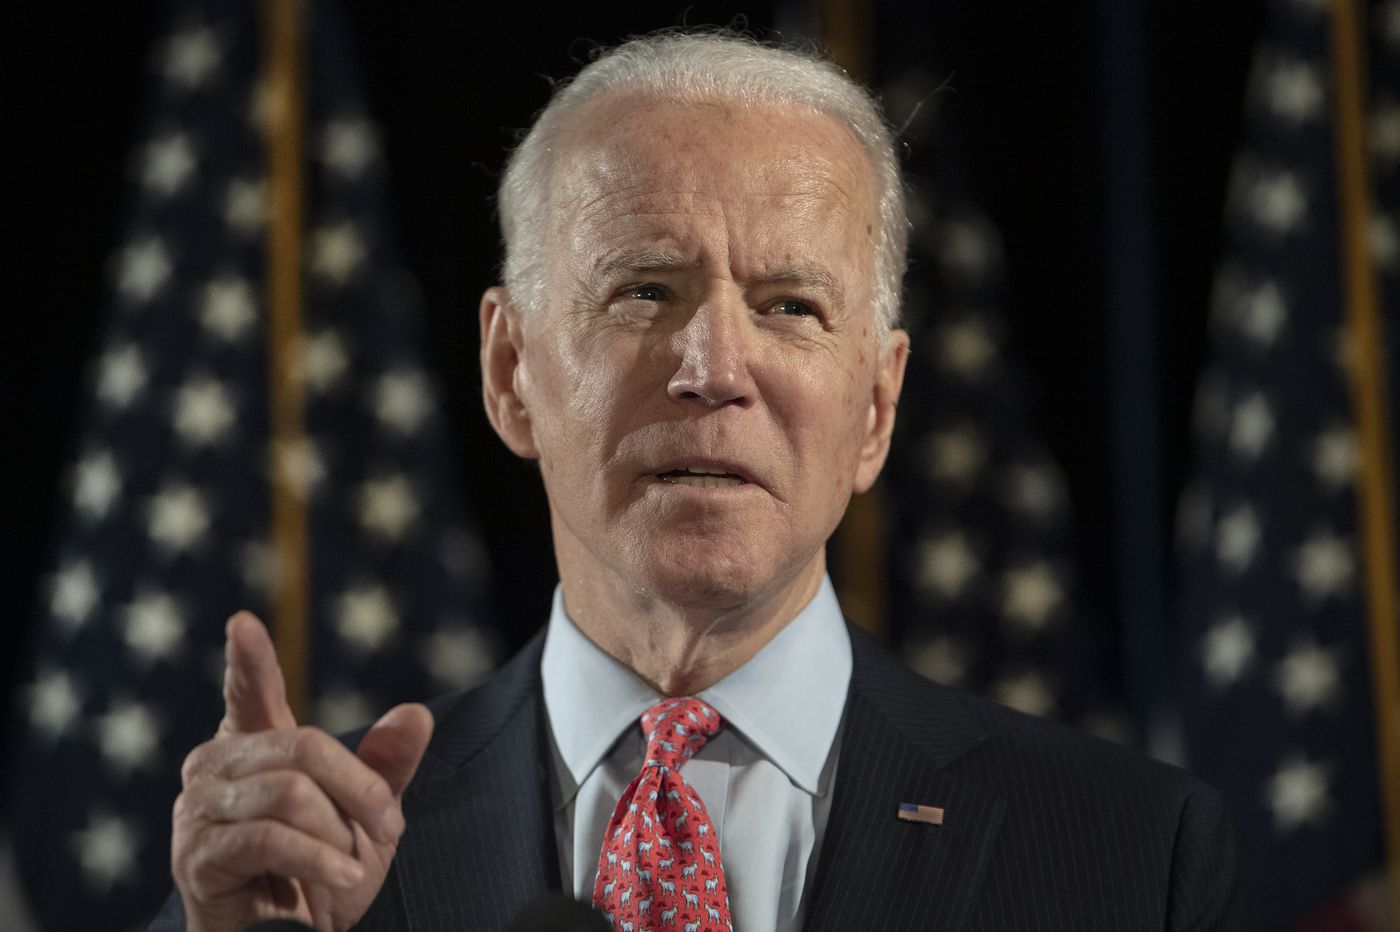 Joe Biden denies sexual assault accusation, but faces new pressure over Senate documents